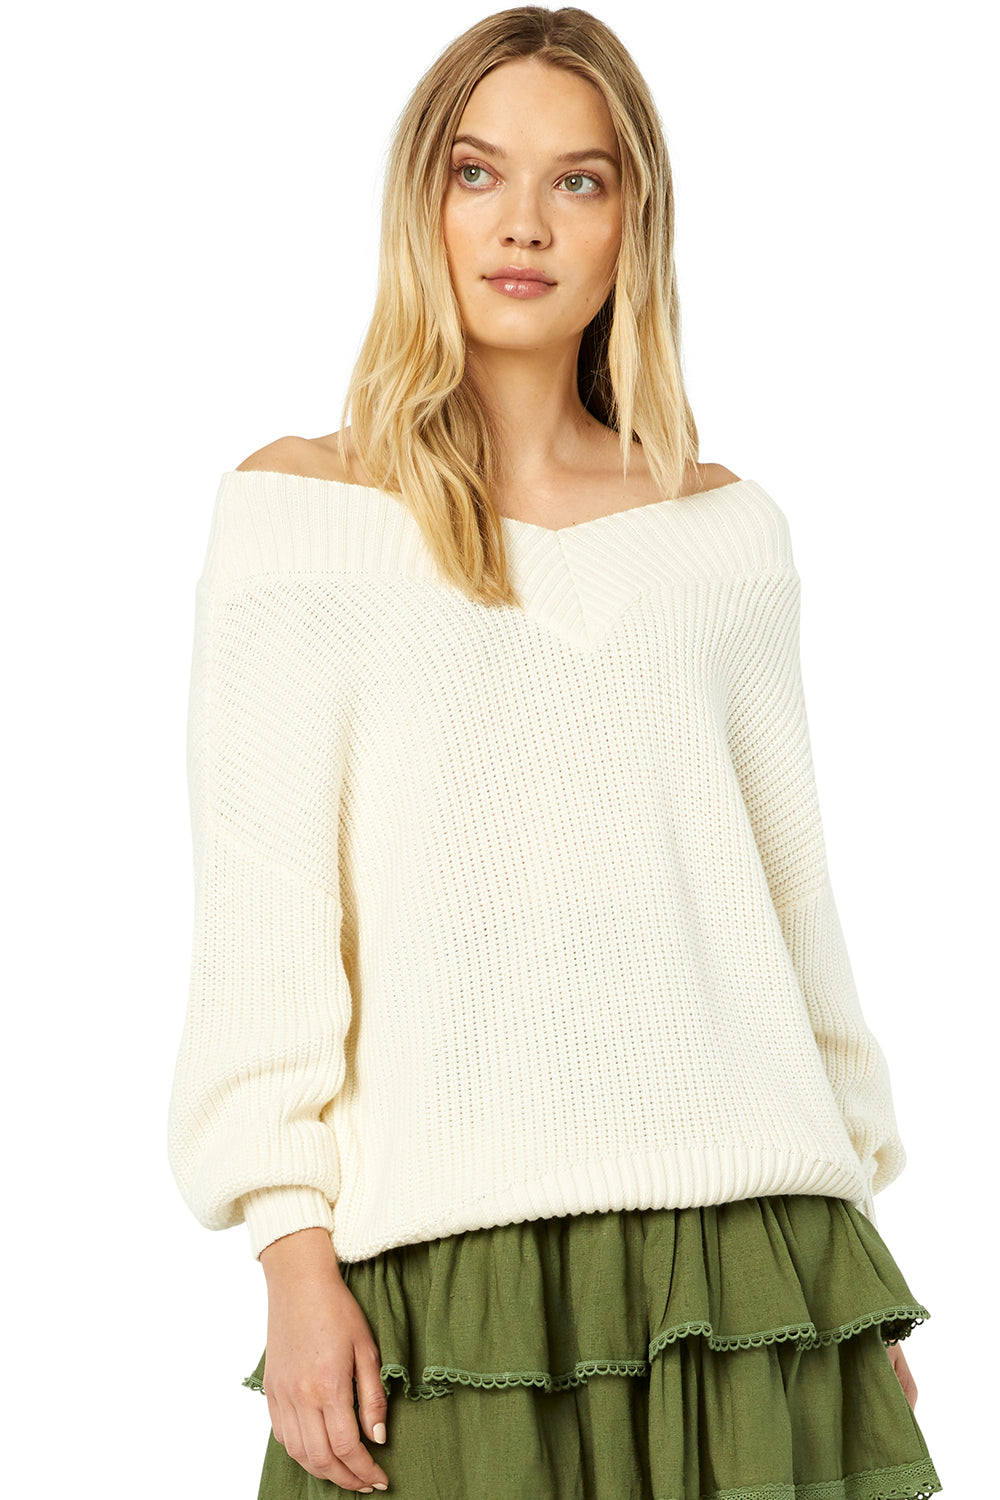 HERA SWEATER - MISA Los Angeles